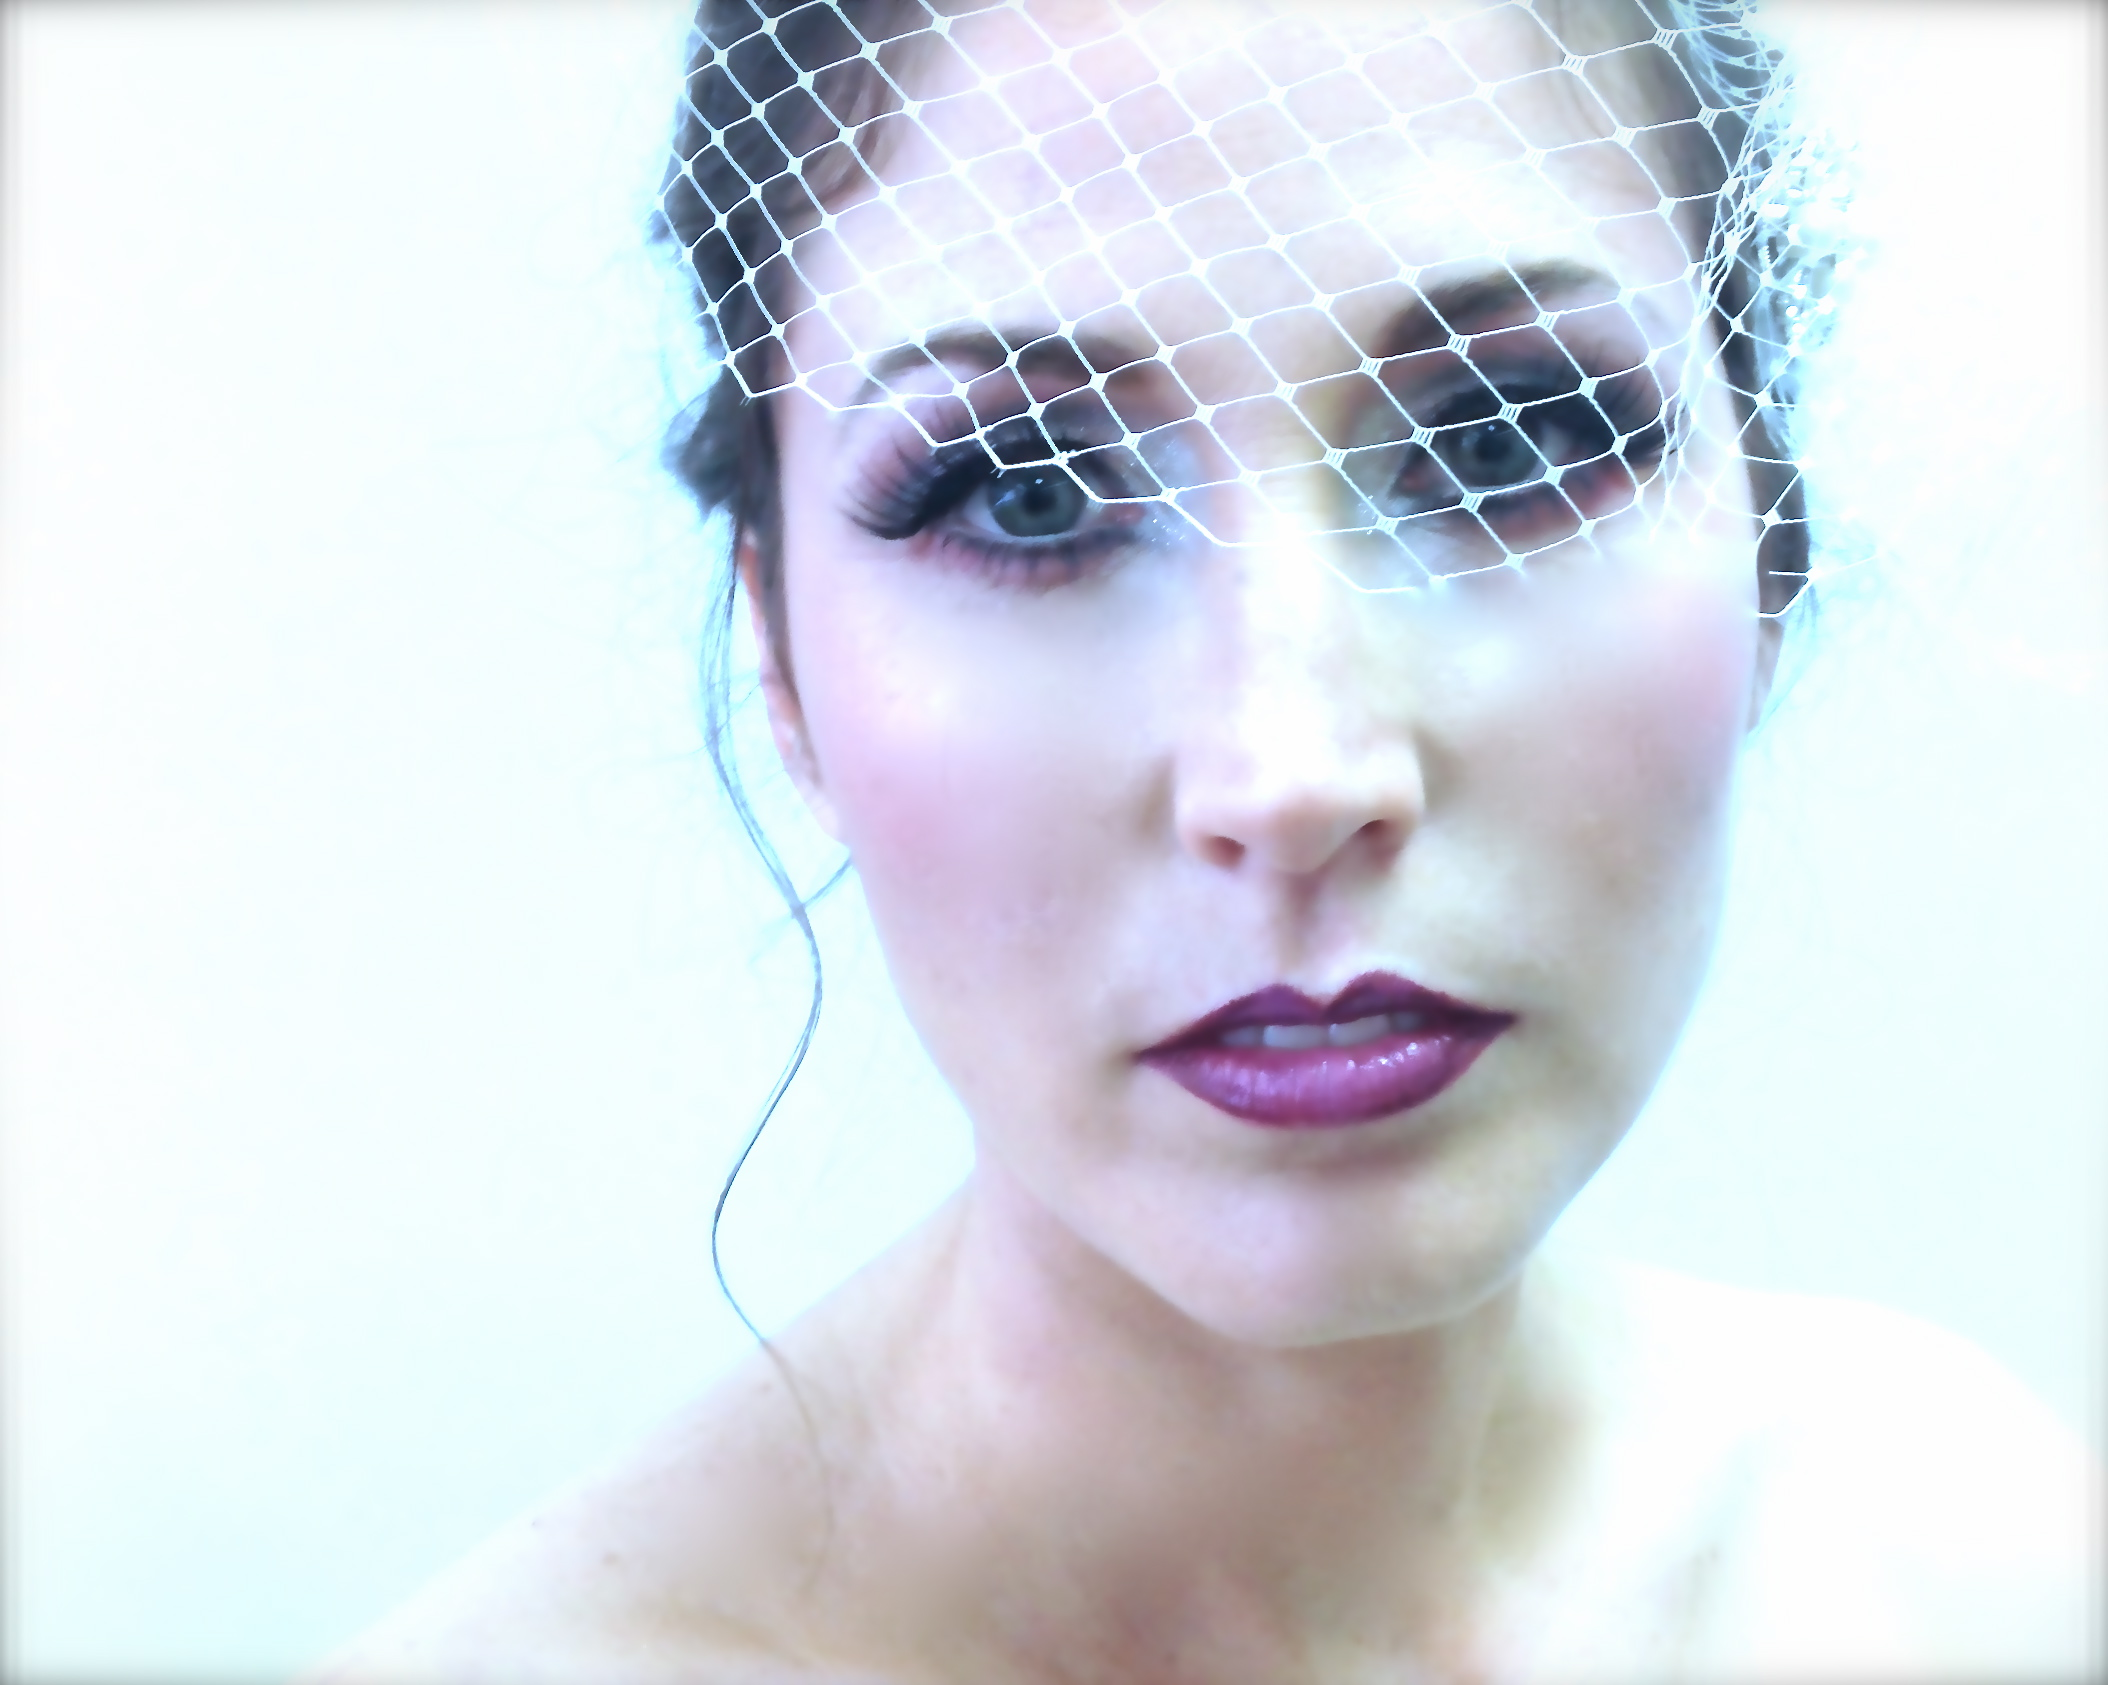 Bridal photos shoot-Sarina Durden Makeup & Hair